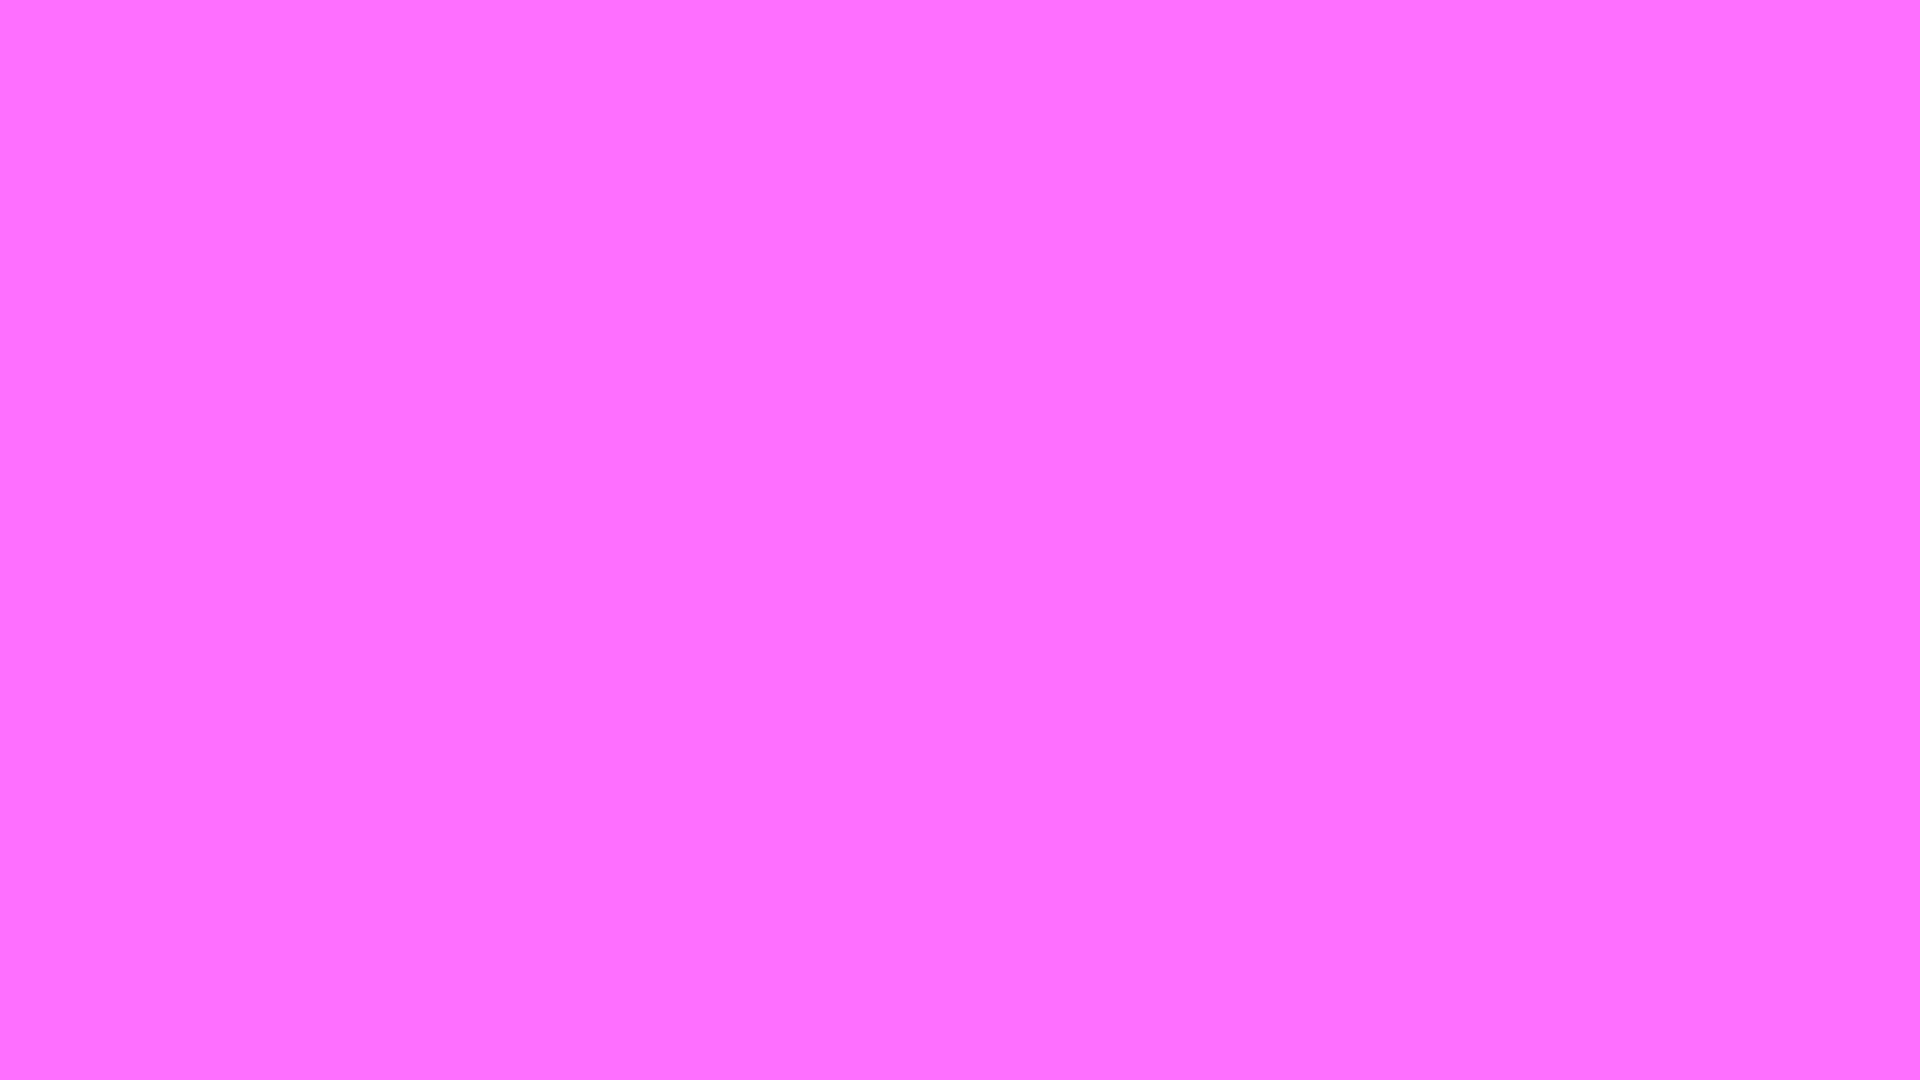 1920x1080 Ultra Pink Solid Color Background